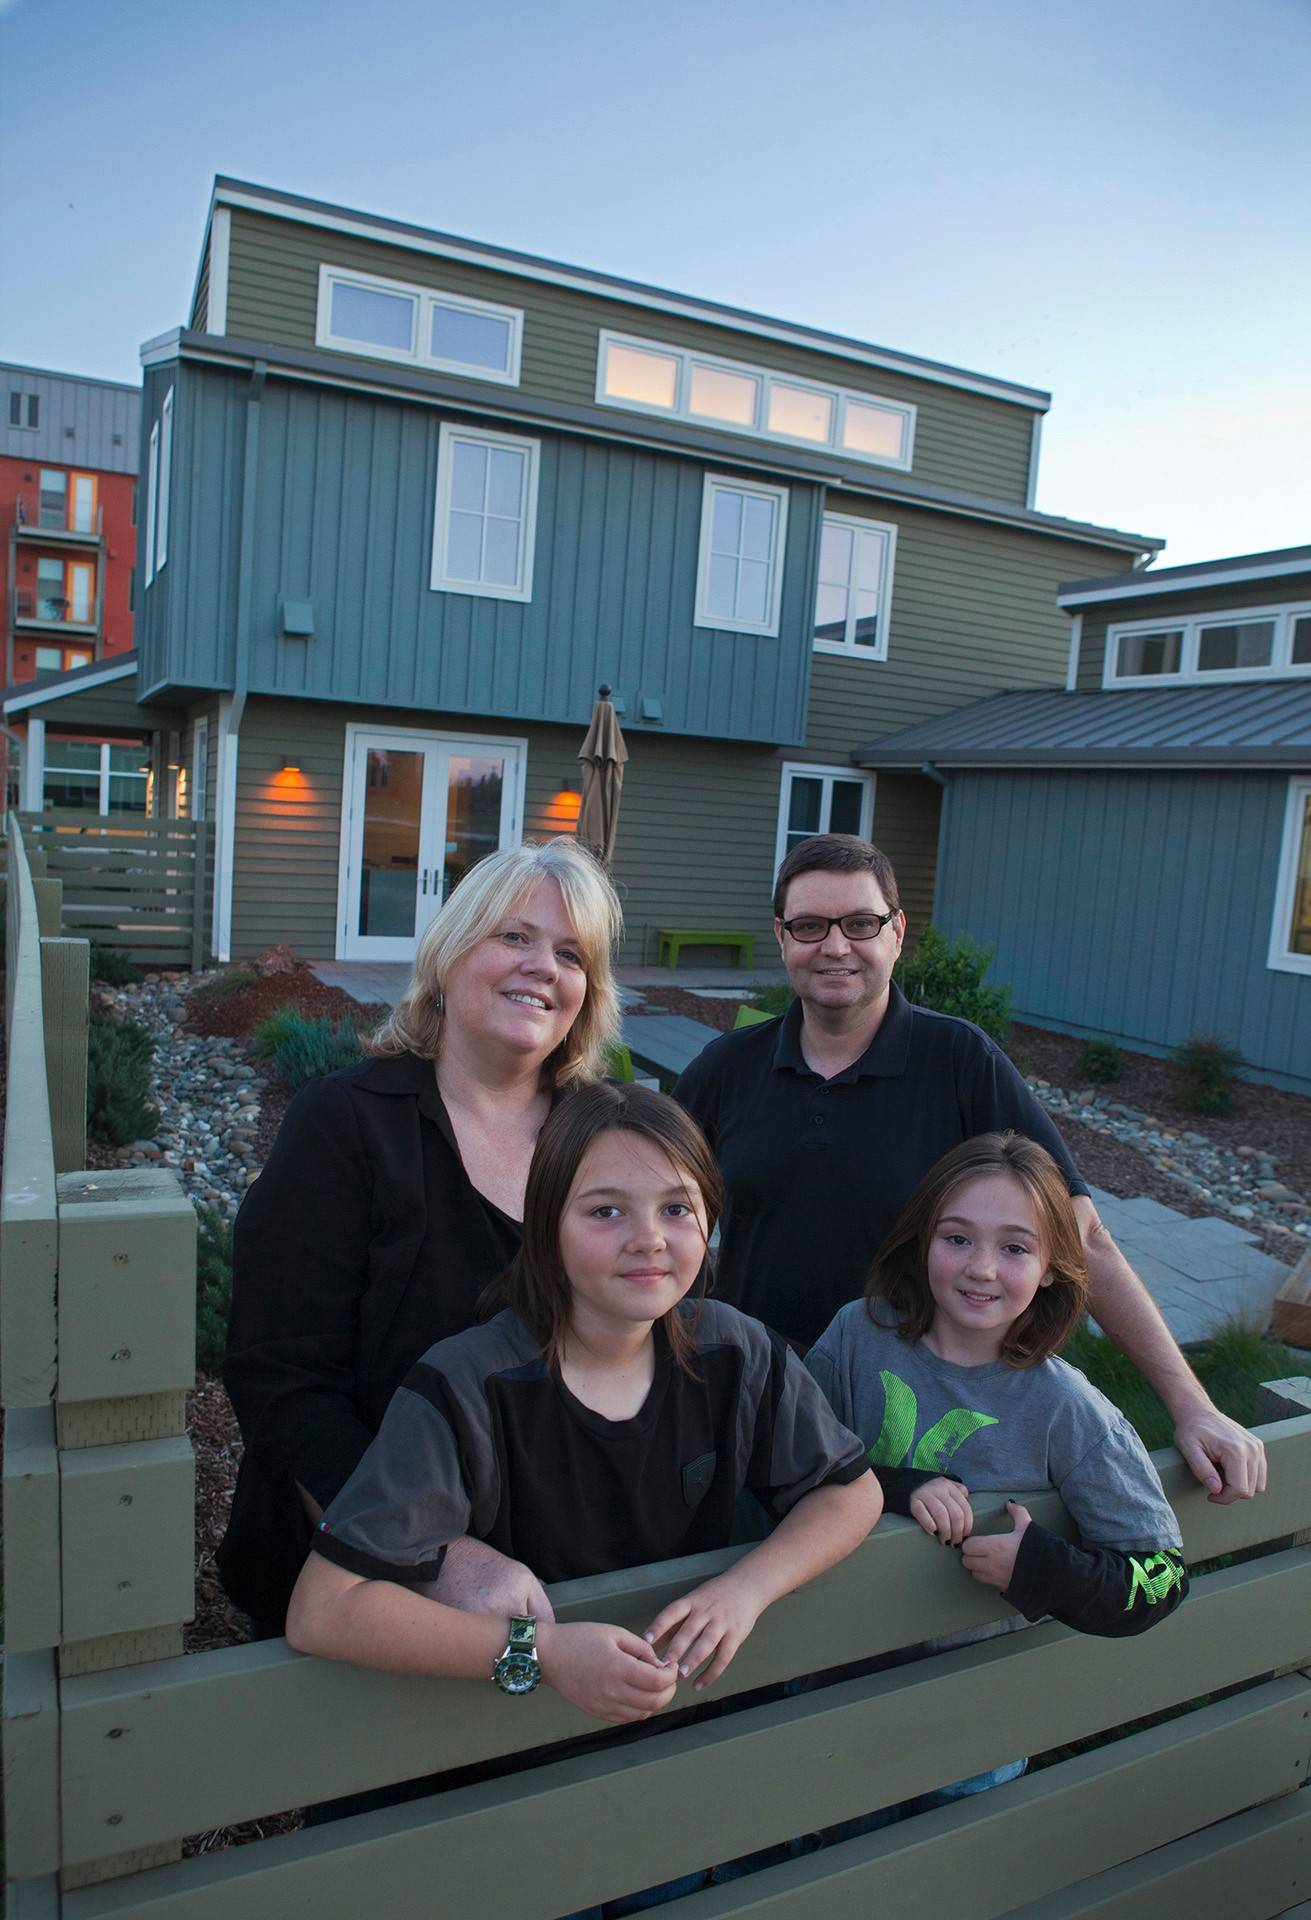 Susan O'Hara and Stewart Bennett with their daughters Aisling, left, and Sabha, are part of Honda's sustainable home experiment.